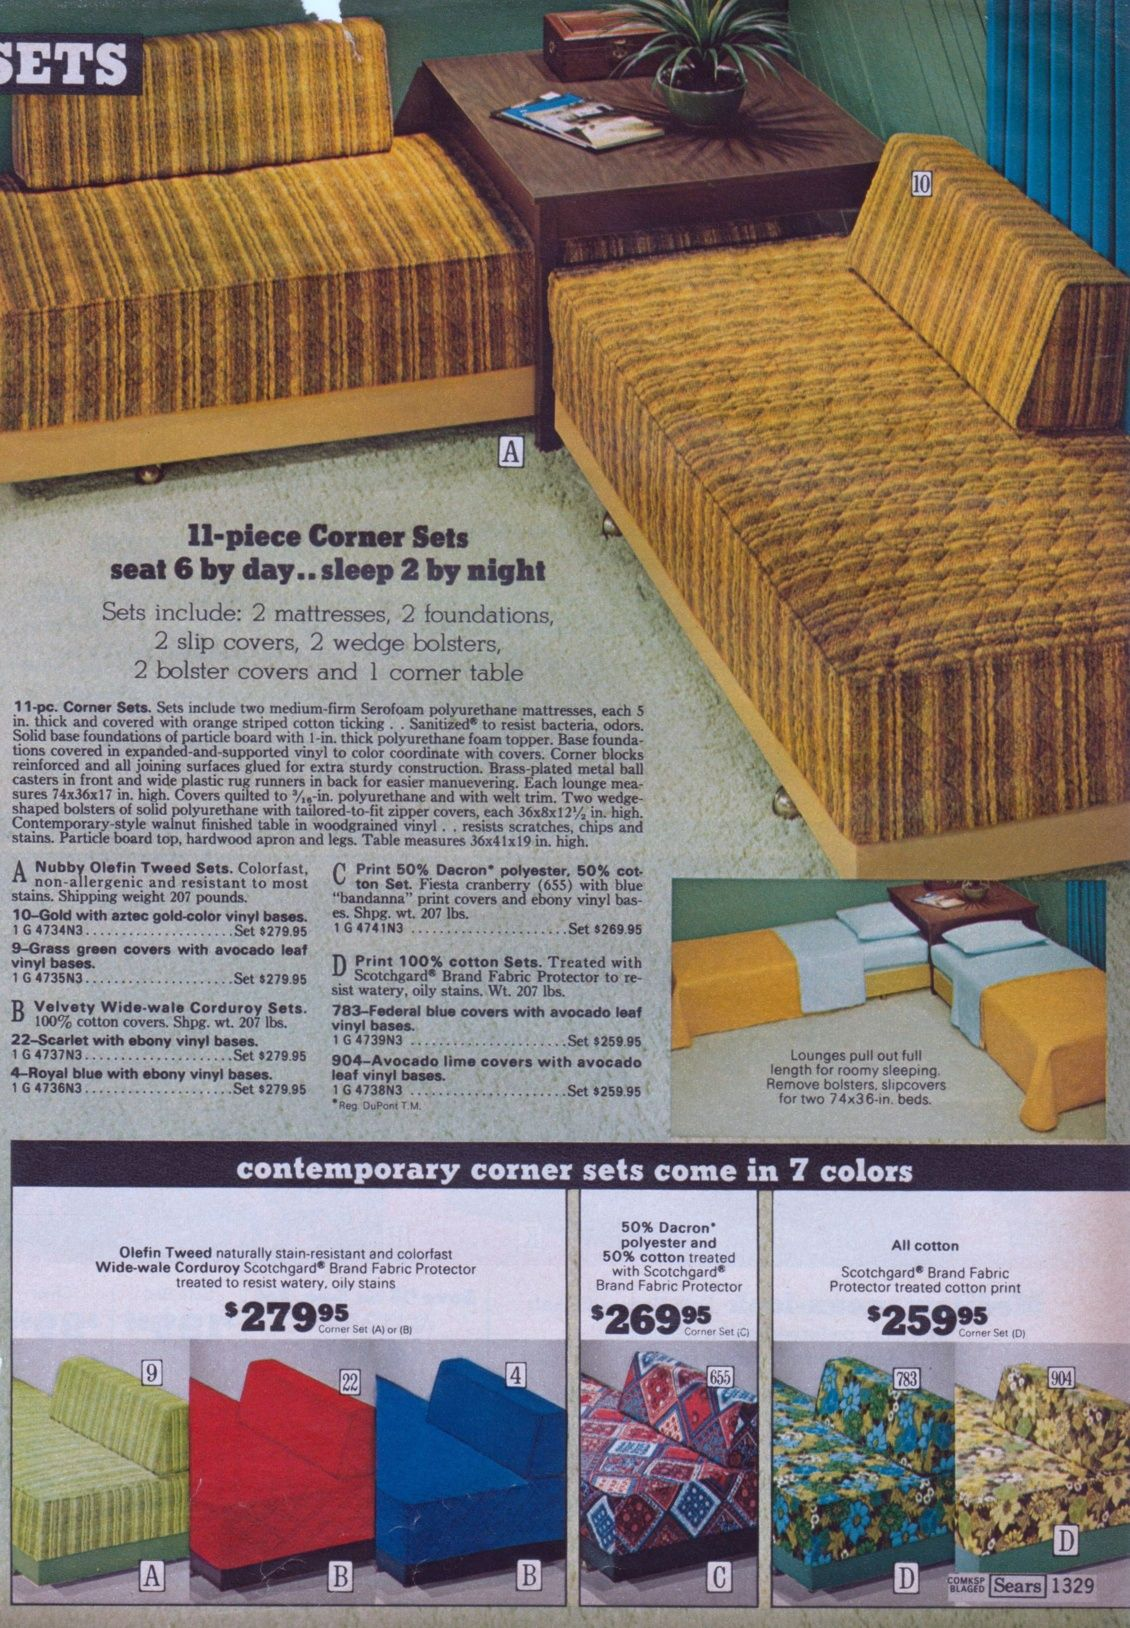 Sears Catalog 70s Furniture And Decor The 70s 70s